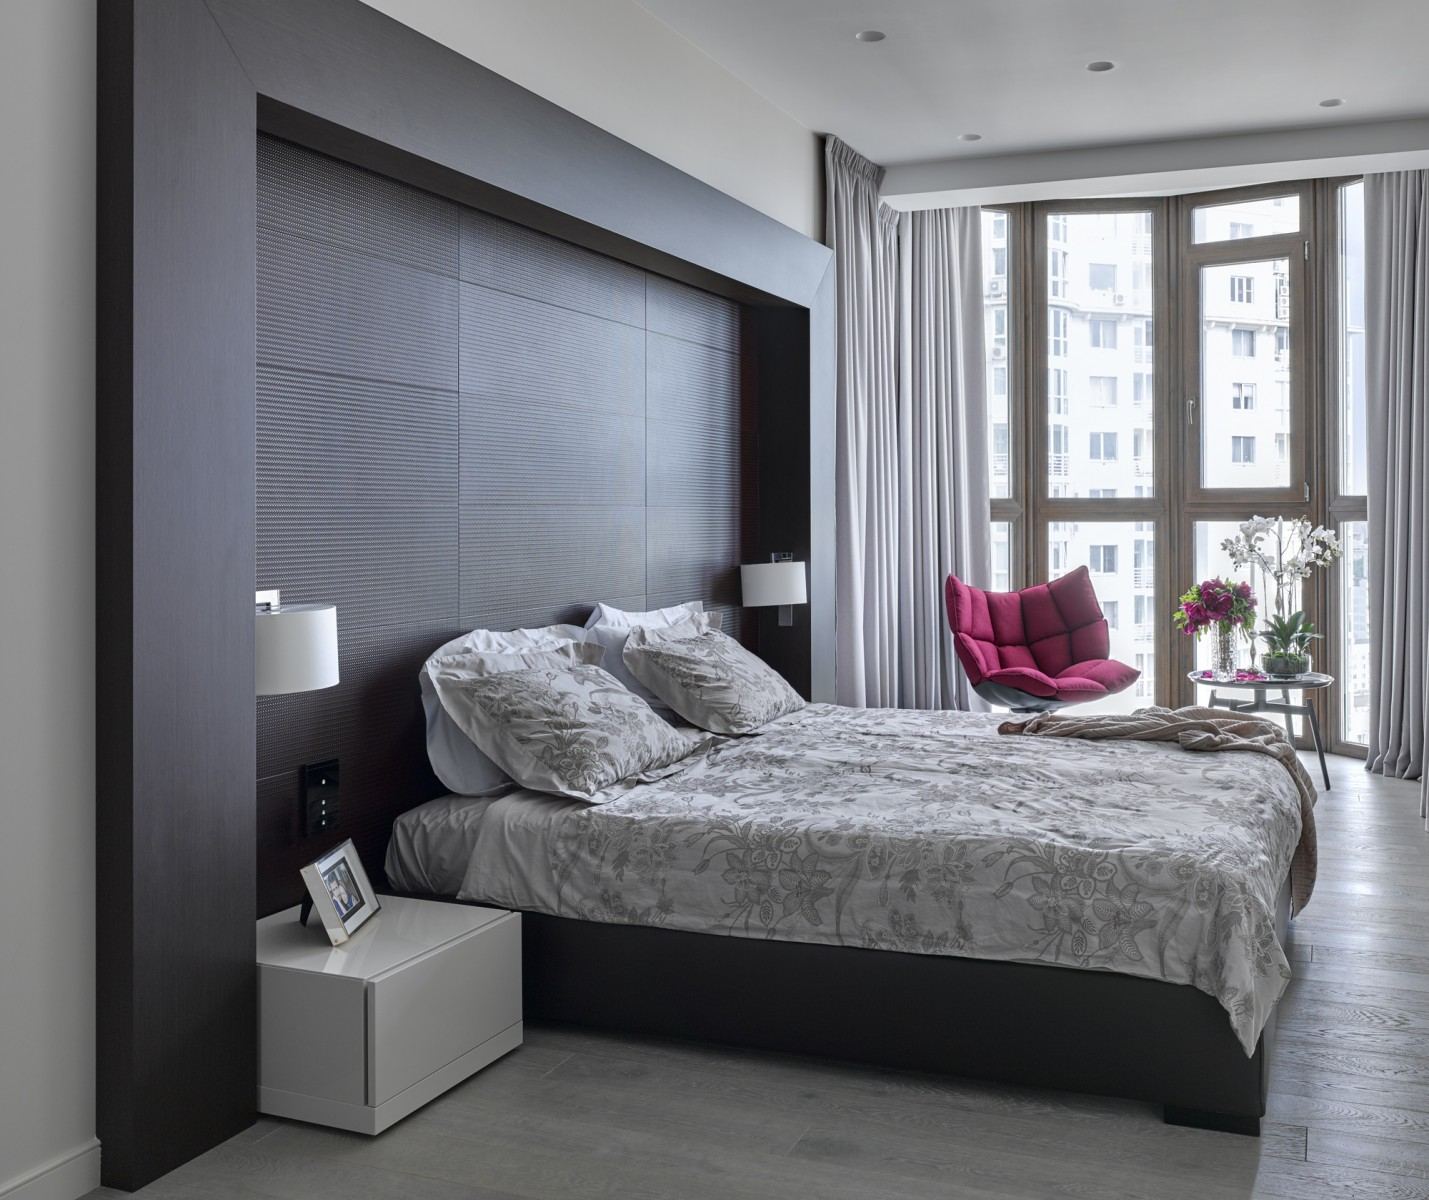 title | Small Bedroom Design Ideas